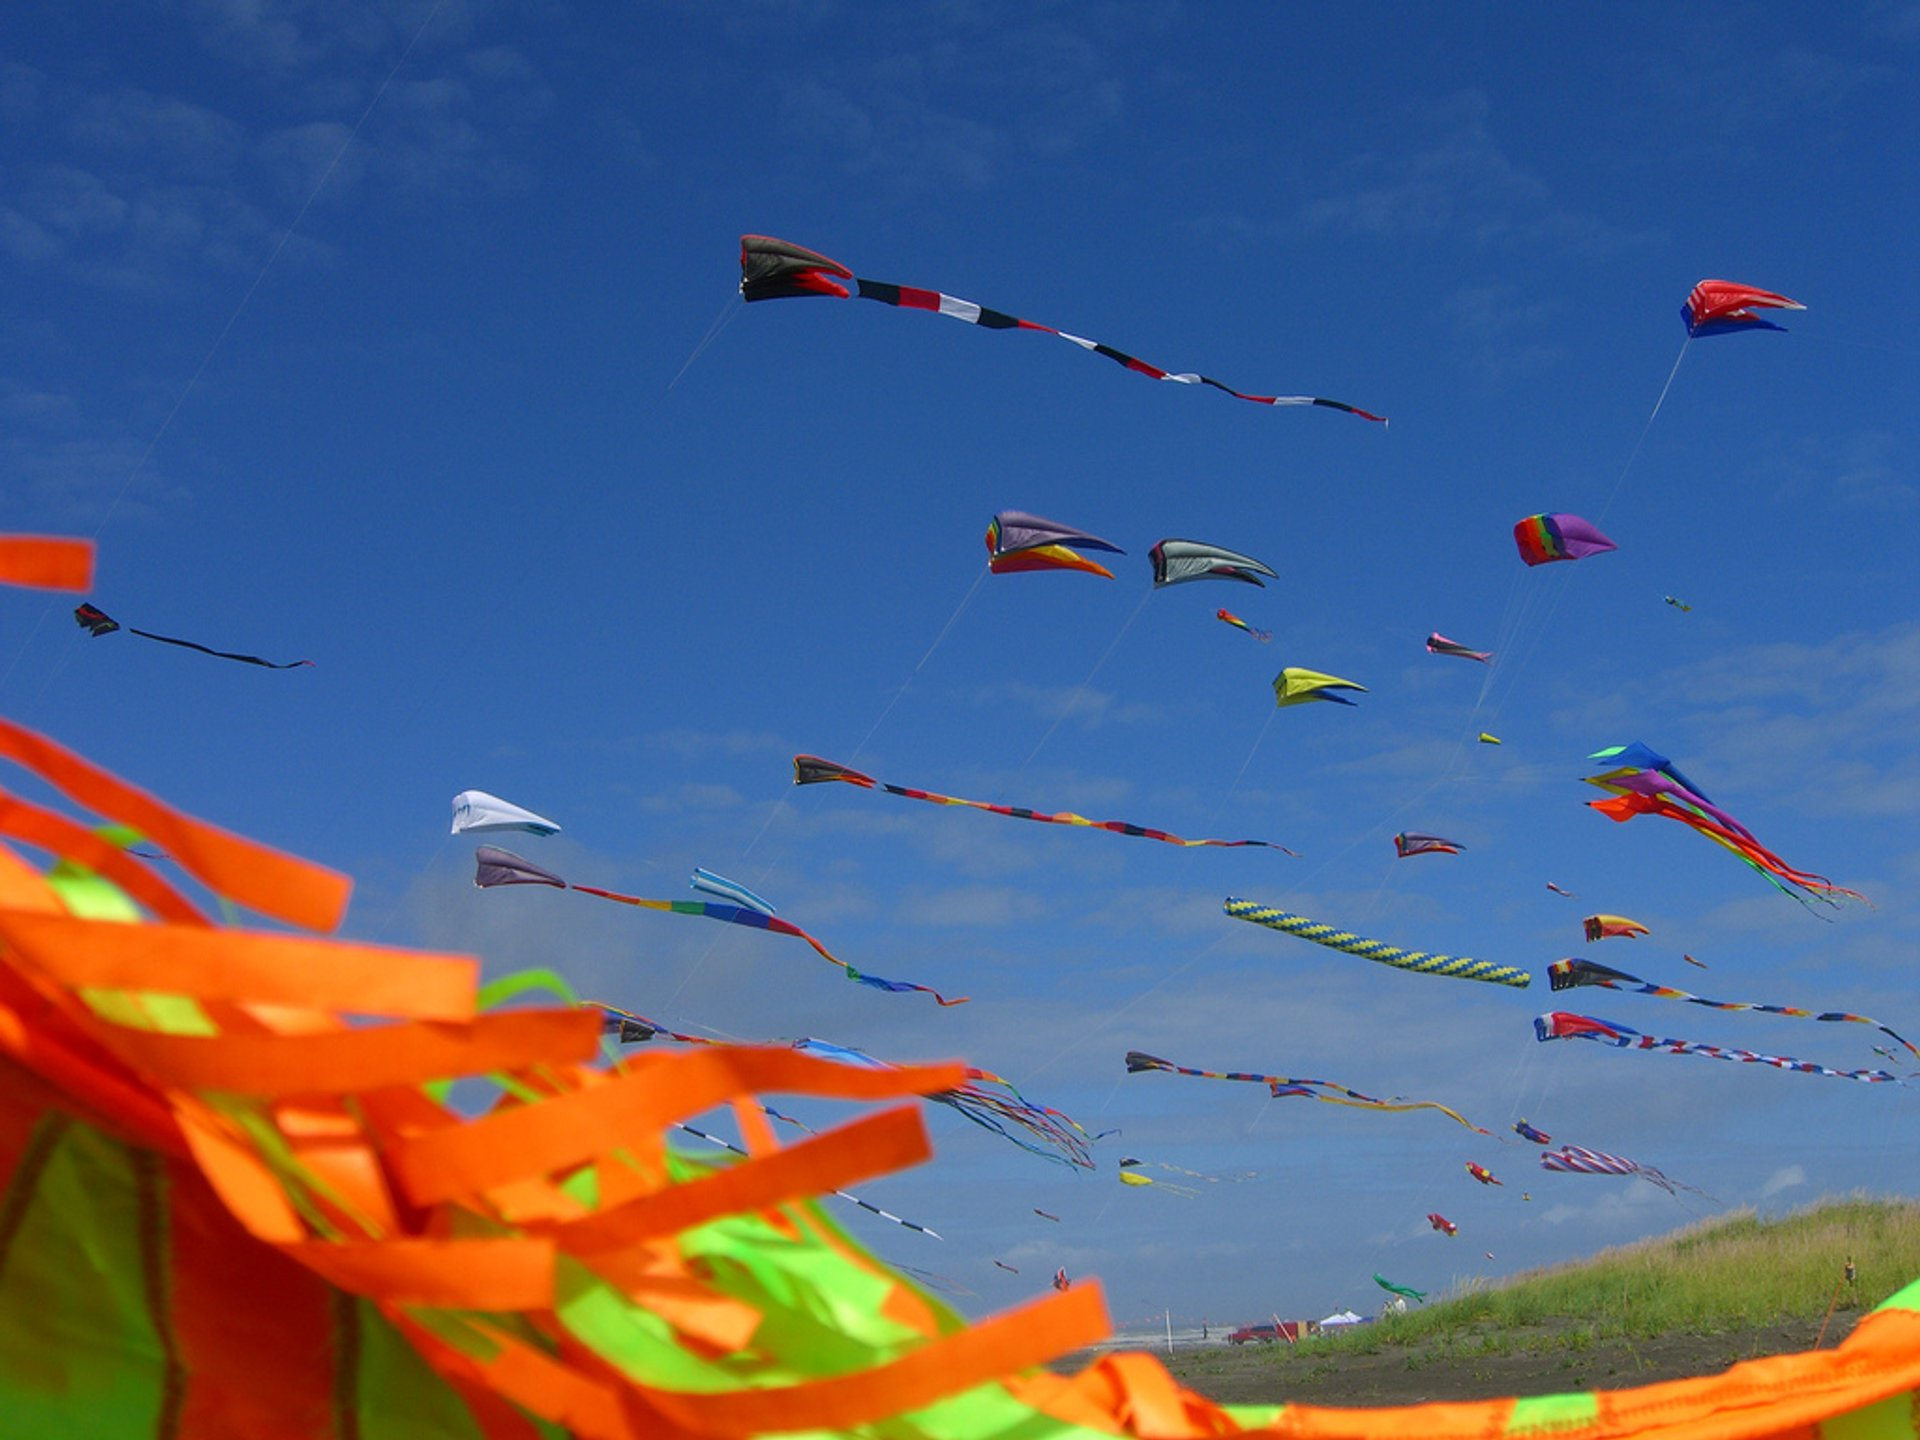 Washington State International Kite Festival in Seattle 2020 - Best Time